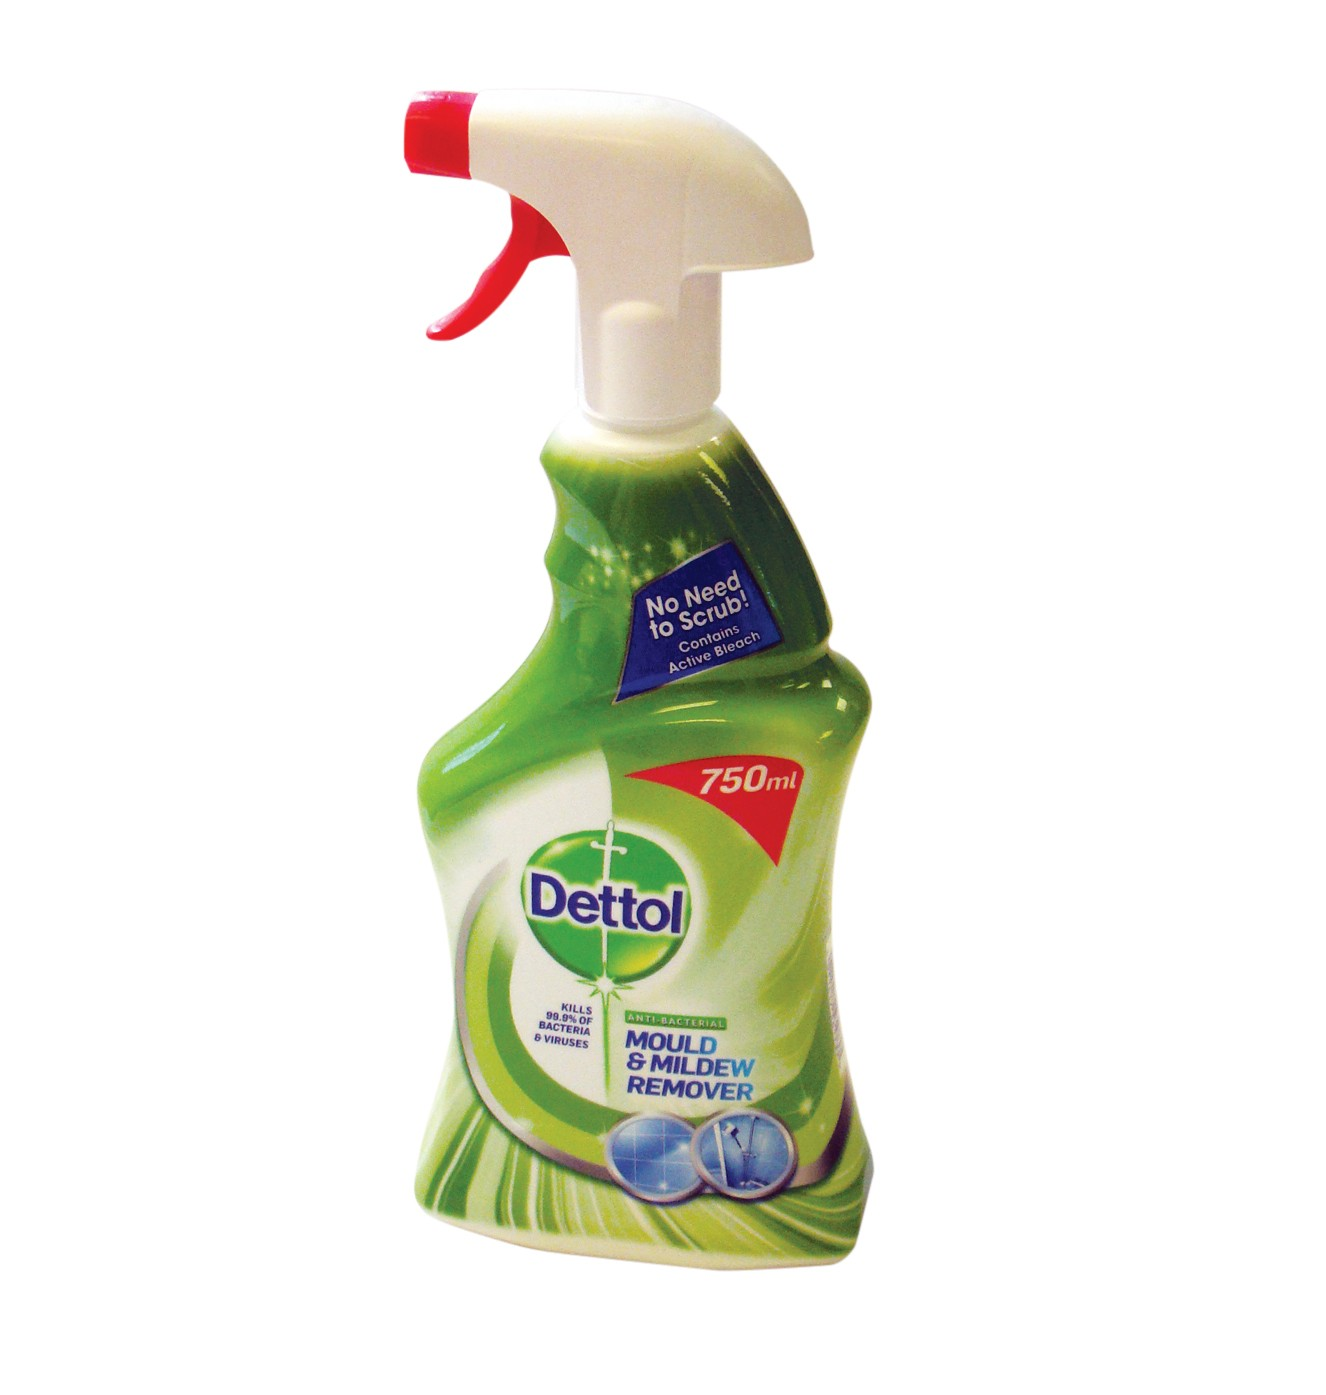 Dettol Mould And Mildew Cleaner 500ml Cussons Baby Liquid Detergent Anti Bacterial 750ml